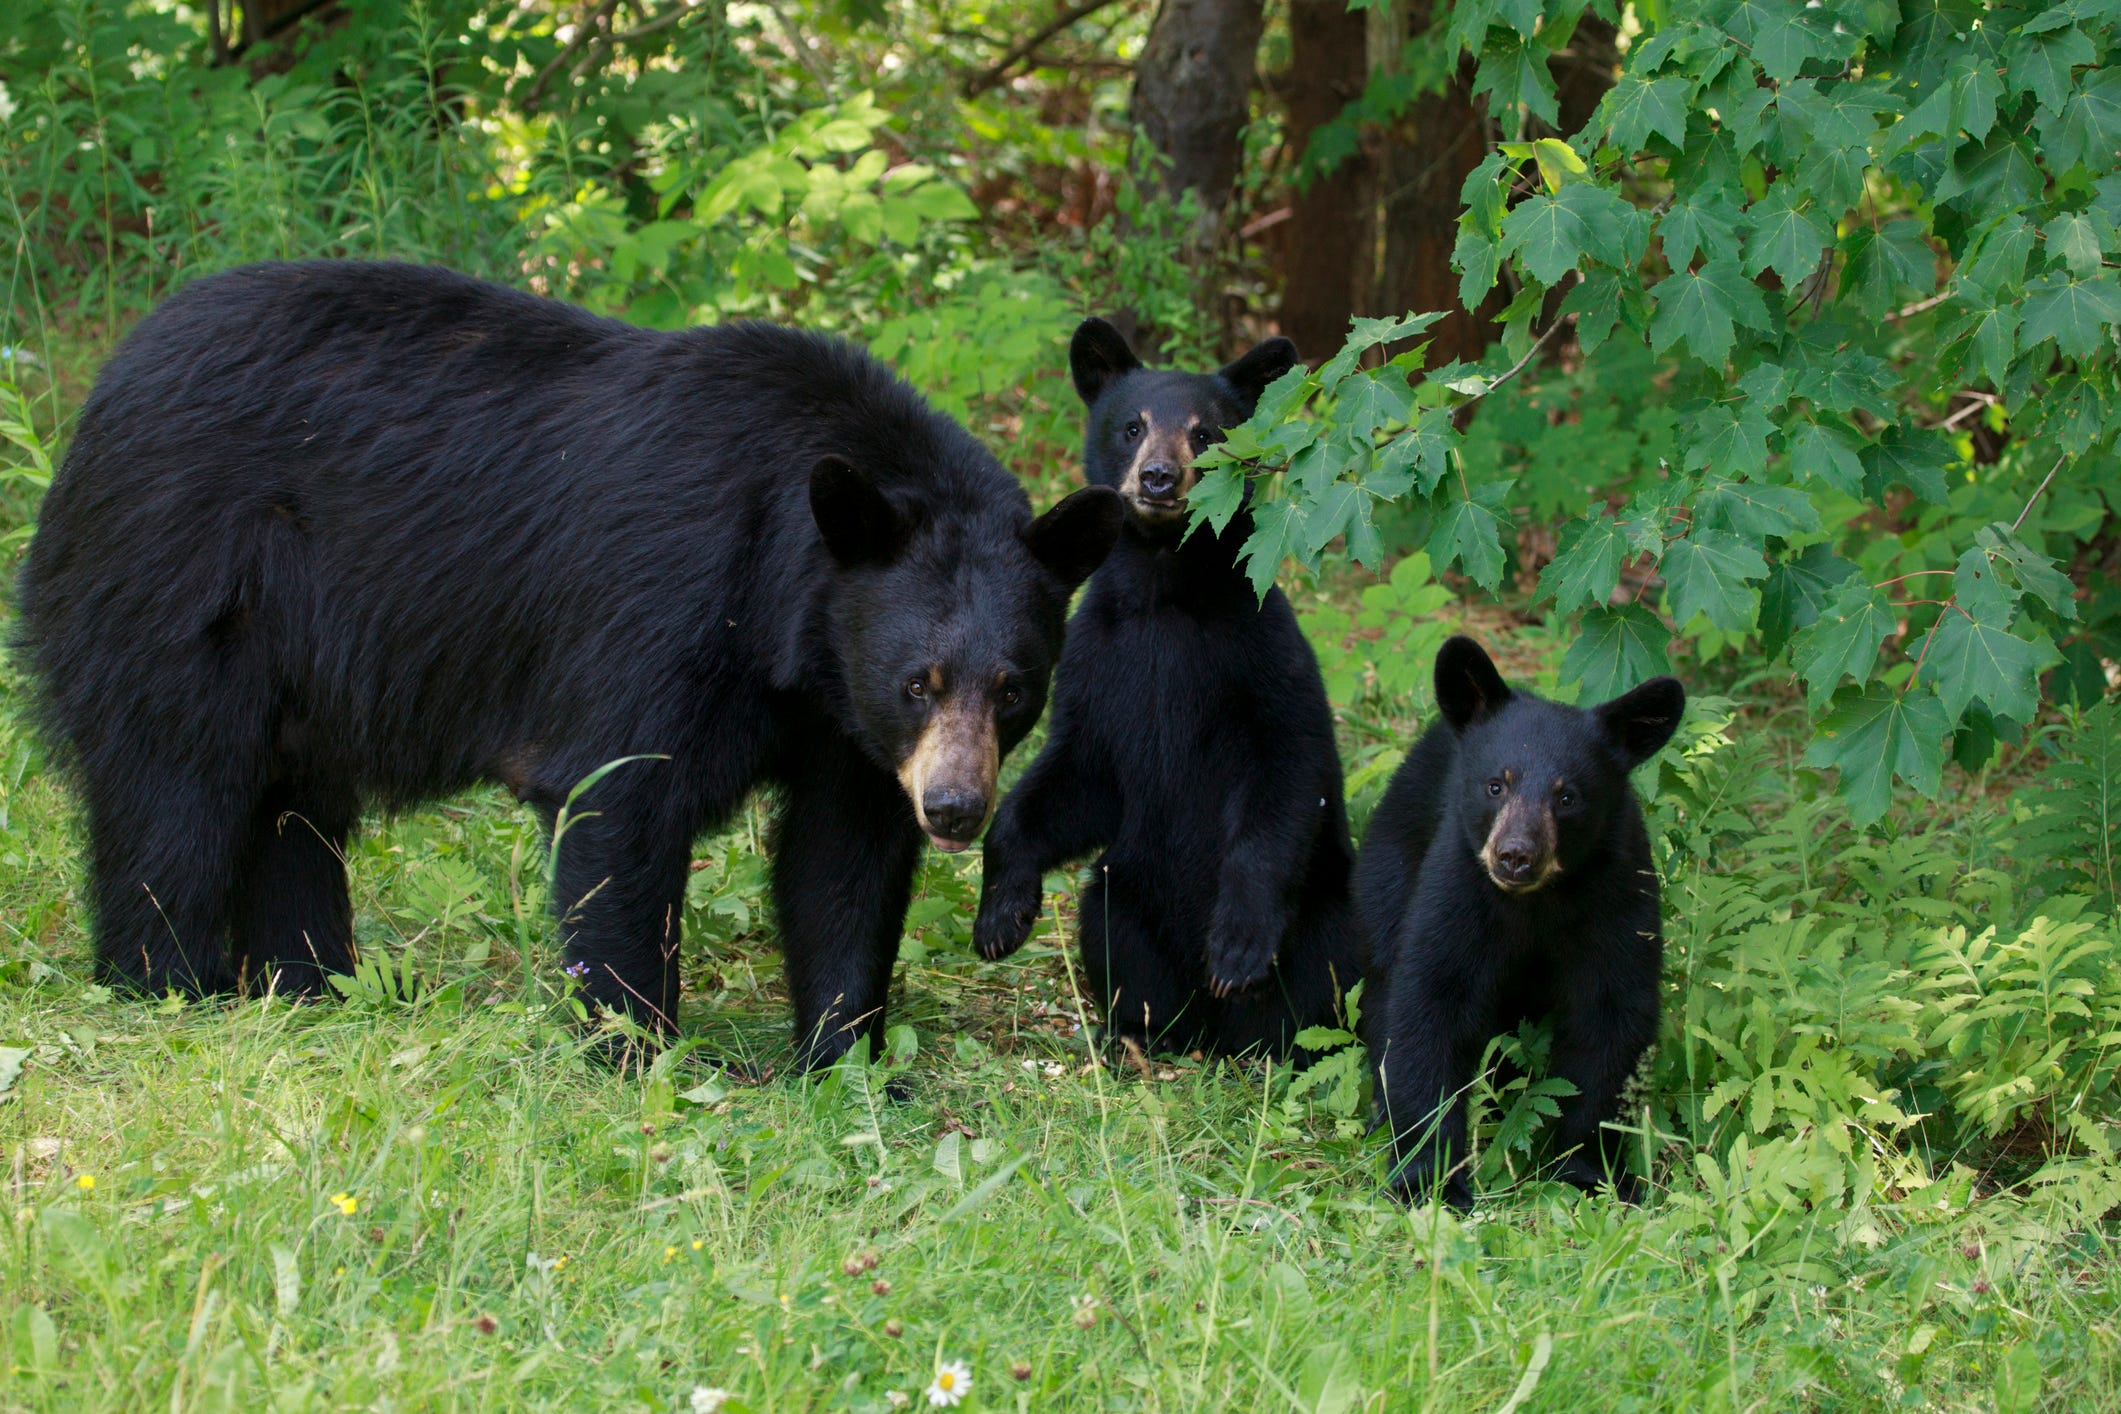 Troopers: Poachers shot 'shrieking' newborn bear cubs and their mother as game camera recorded